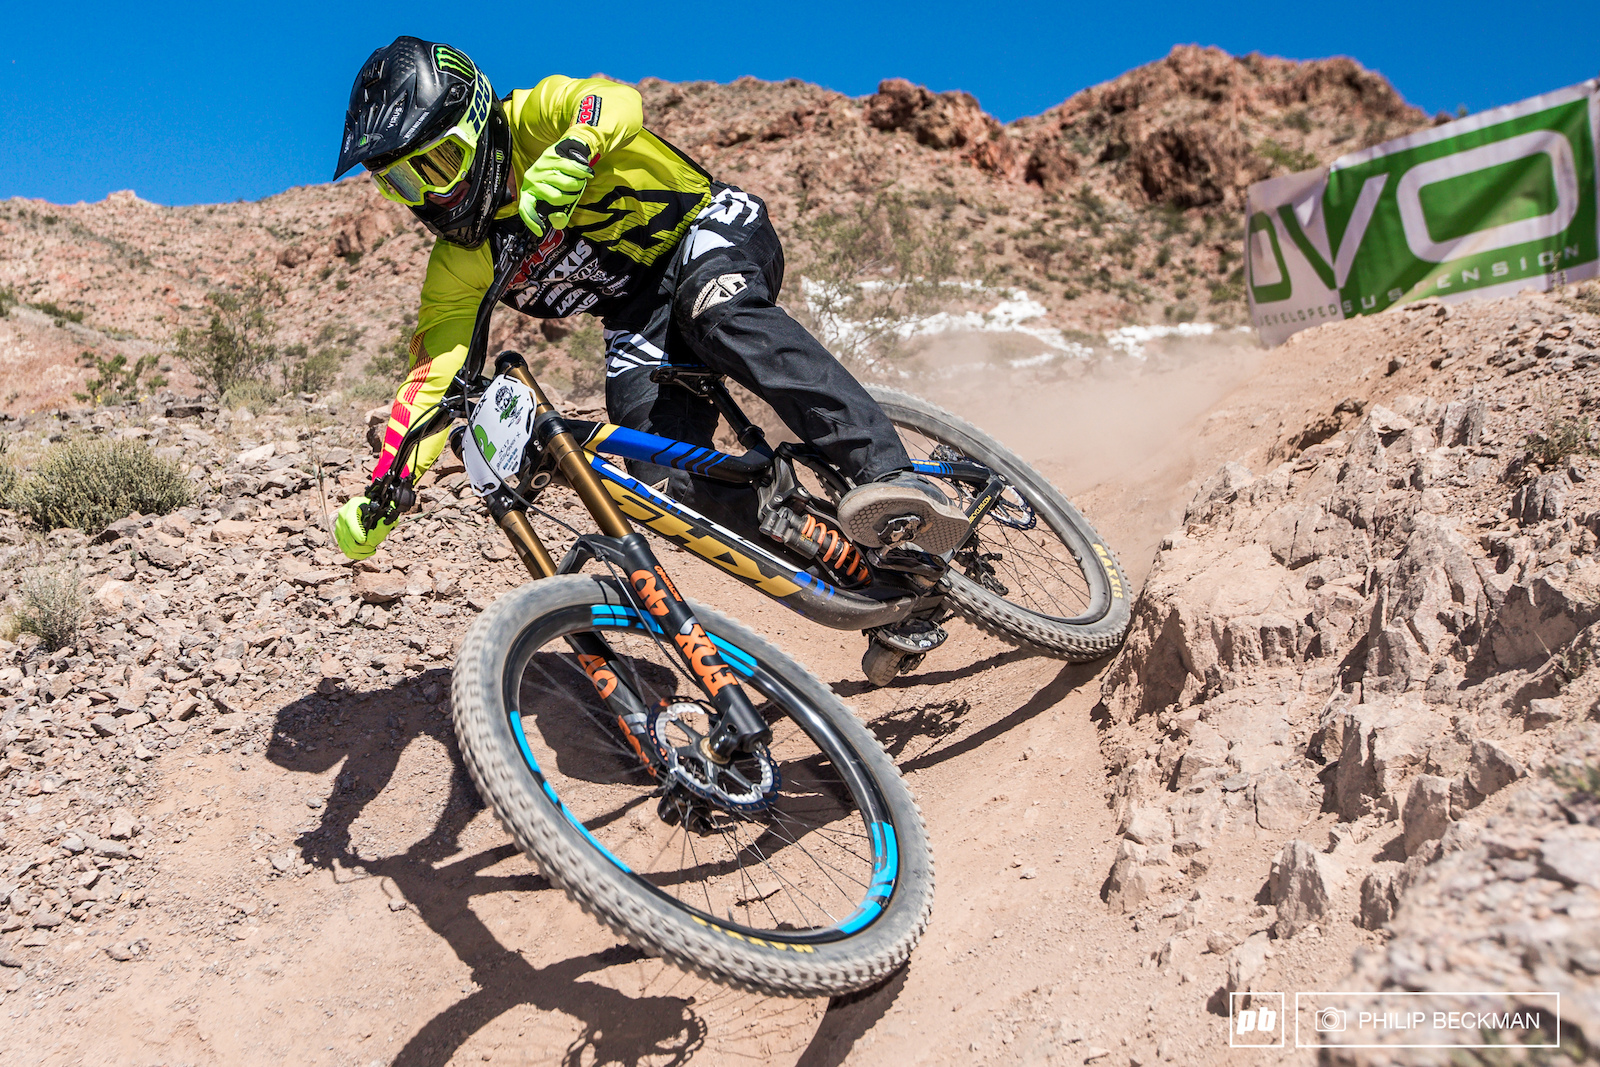 Logan Binggeli KHS Factory Racing donned the overall DVO Winter Gravity Series crown with a smooth second place at Reaper Madness.